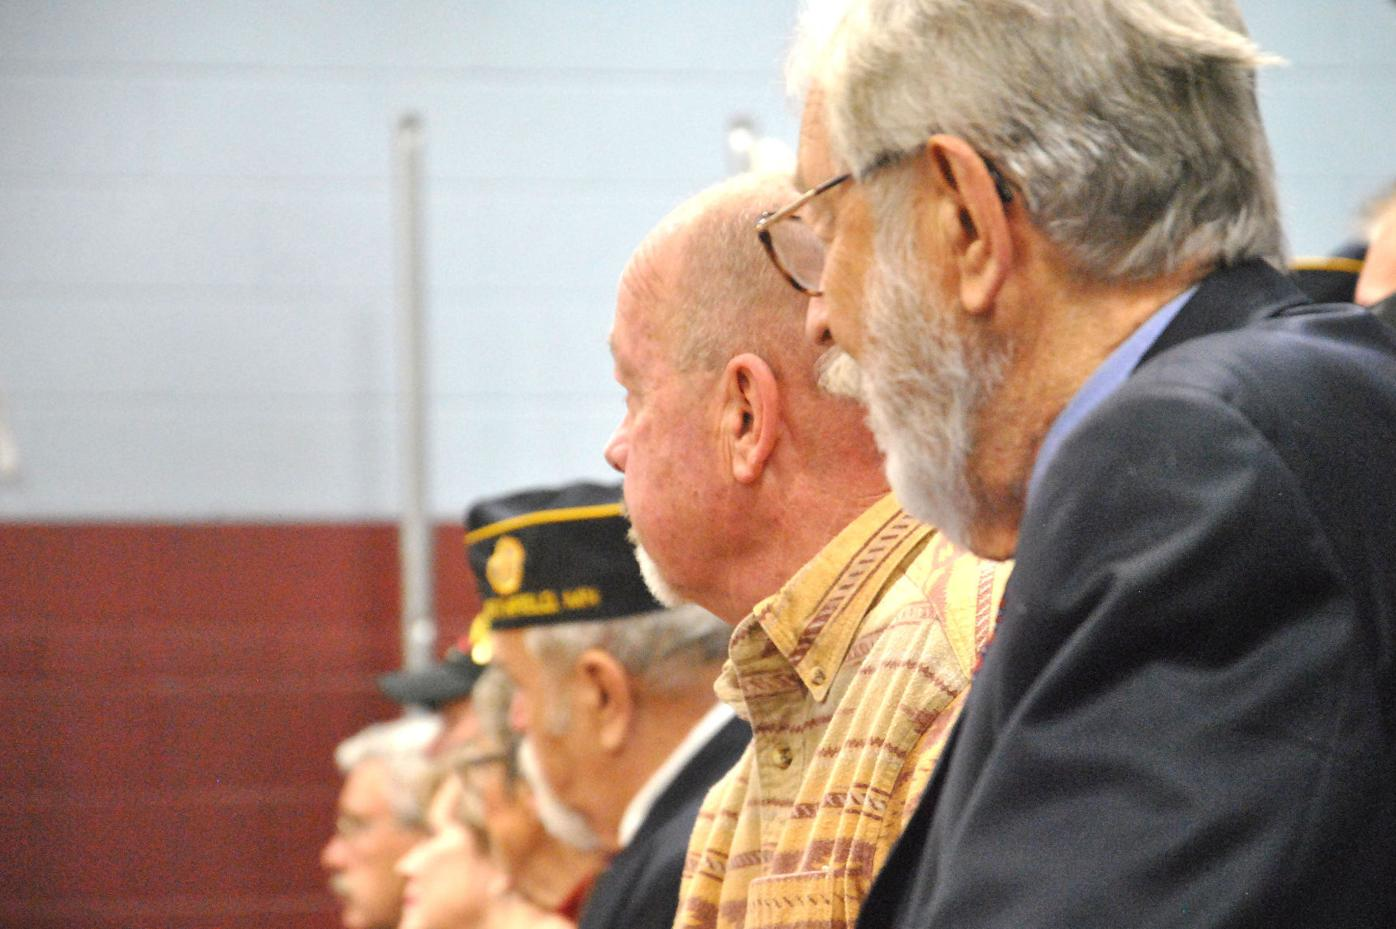 Bridgewater Veterans Day assembly veterans